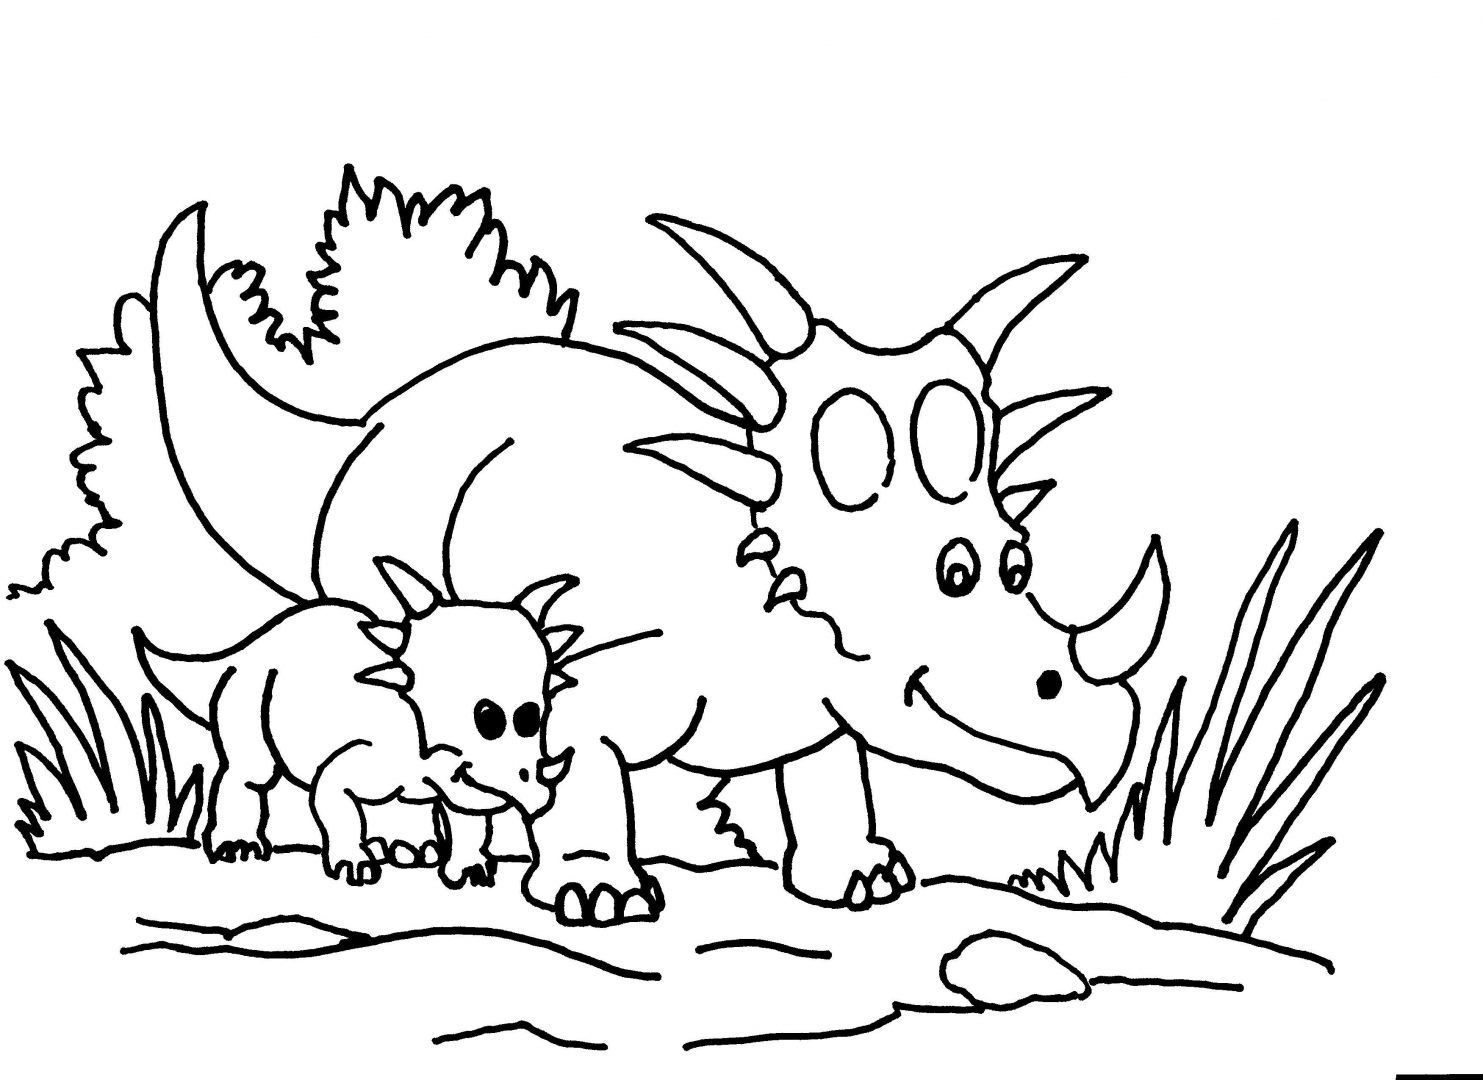 Printable Triceratops Coloring Pages | Coloring Me